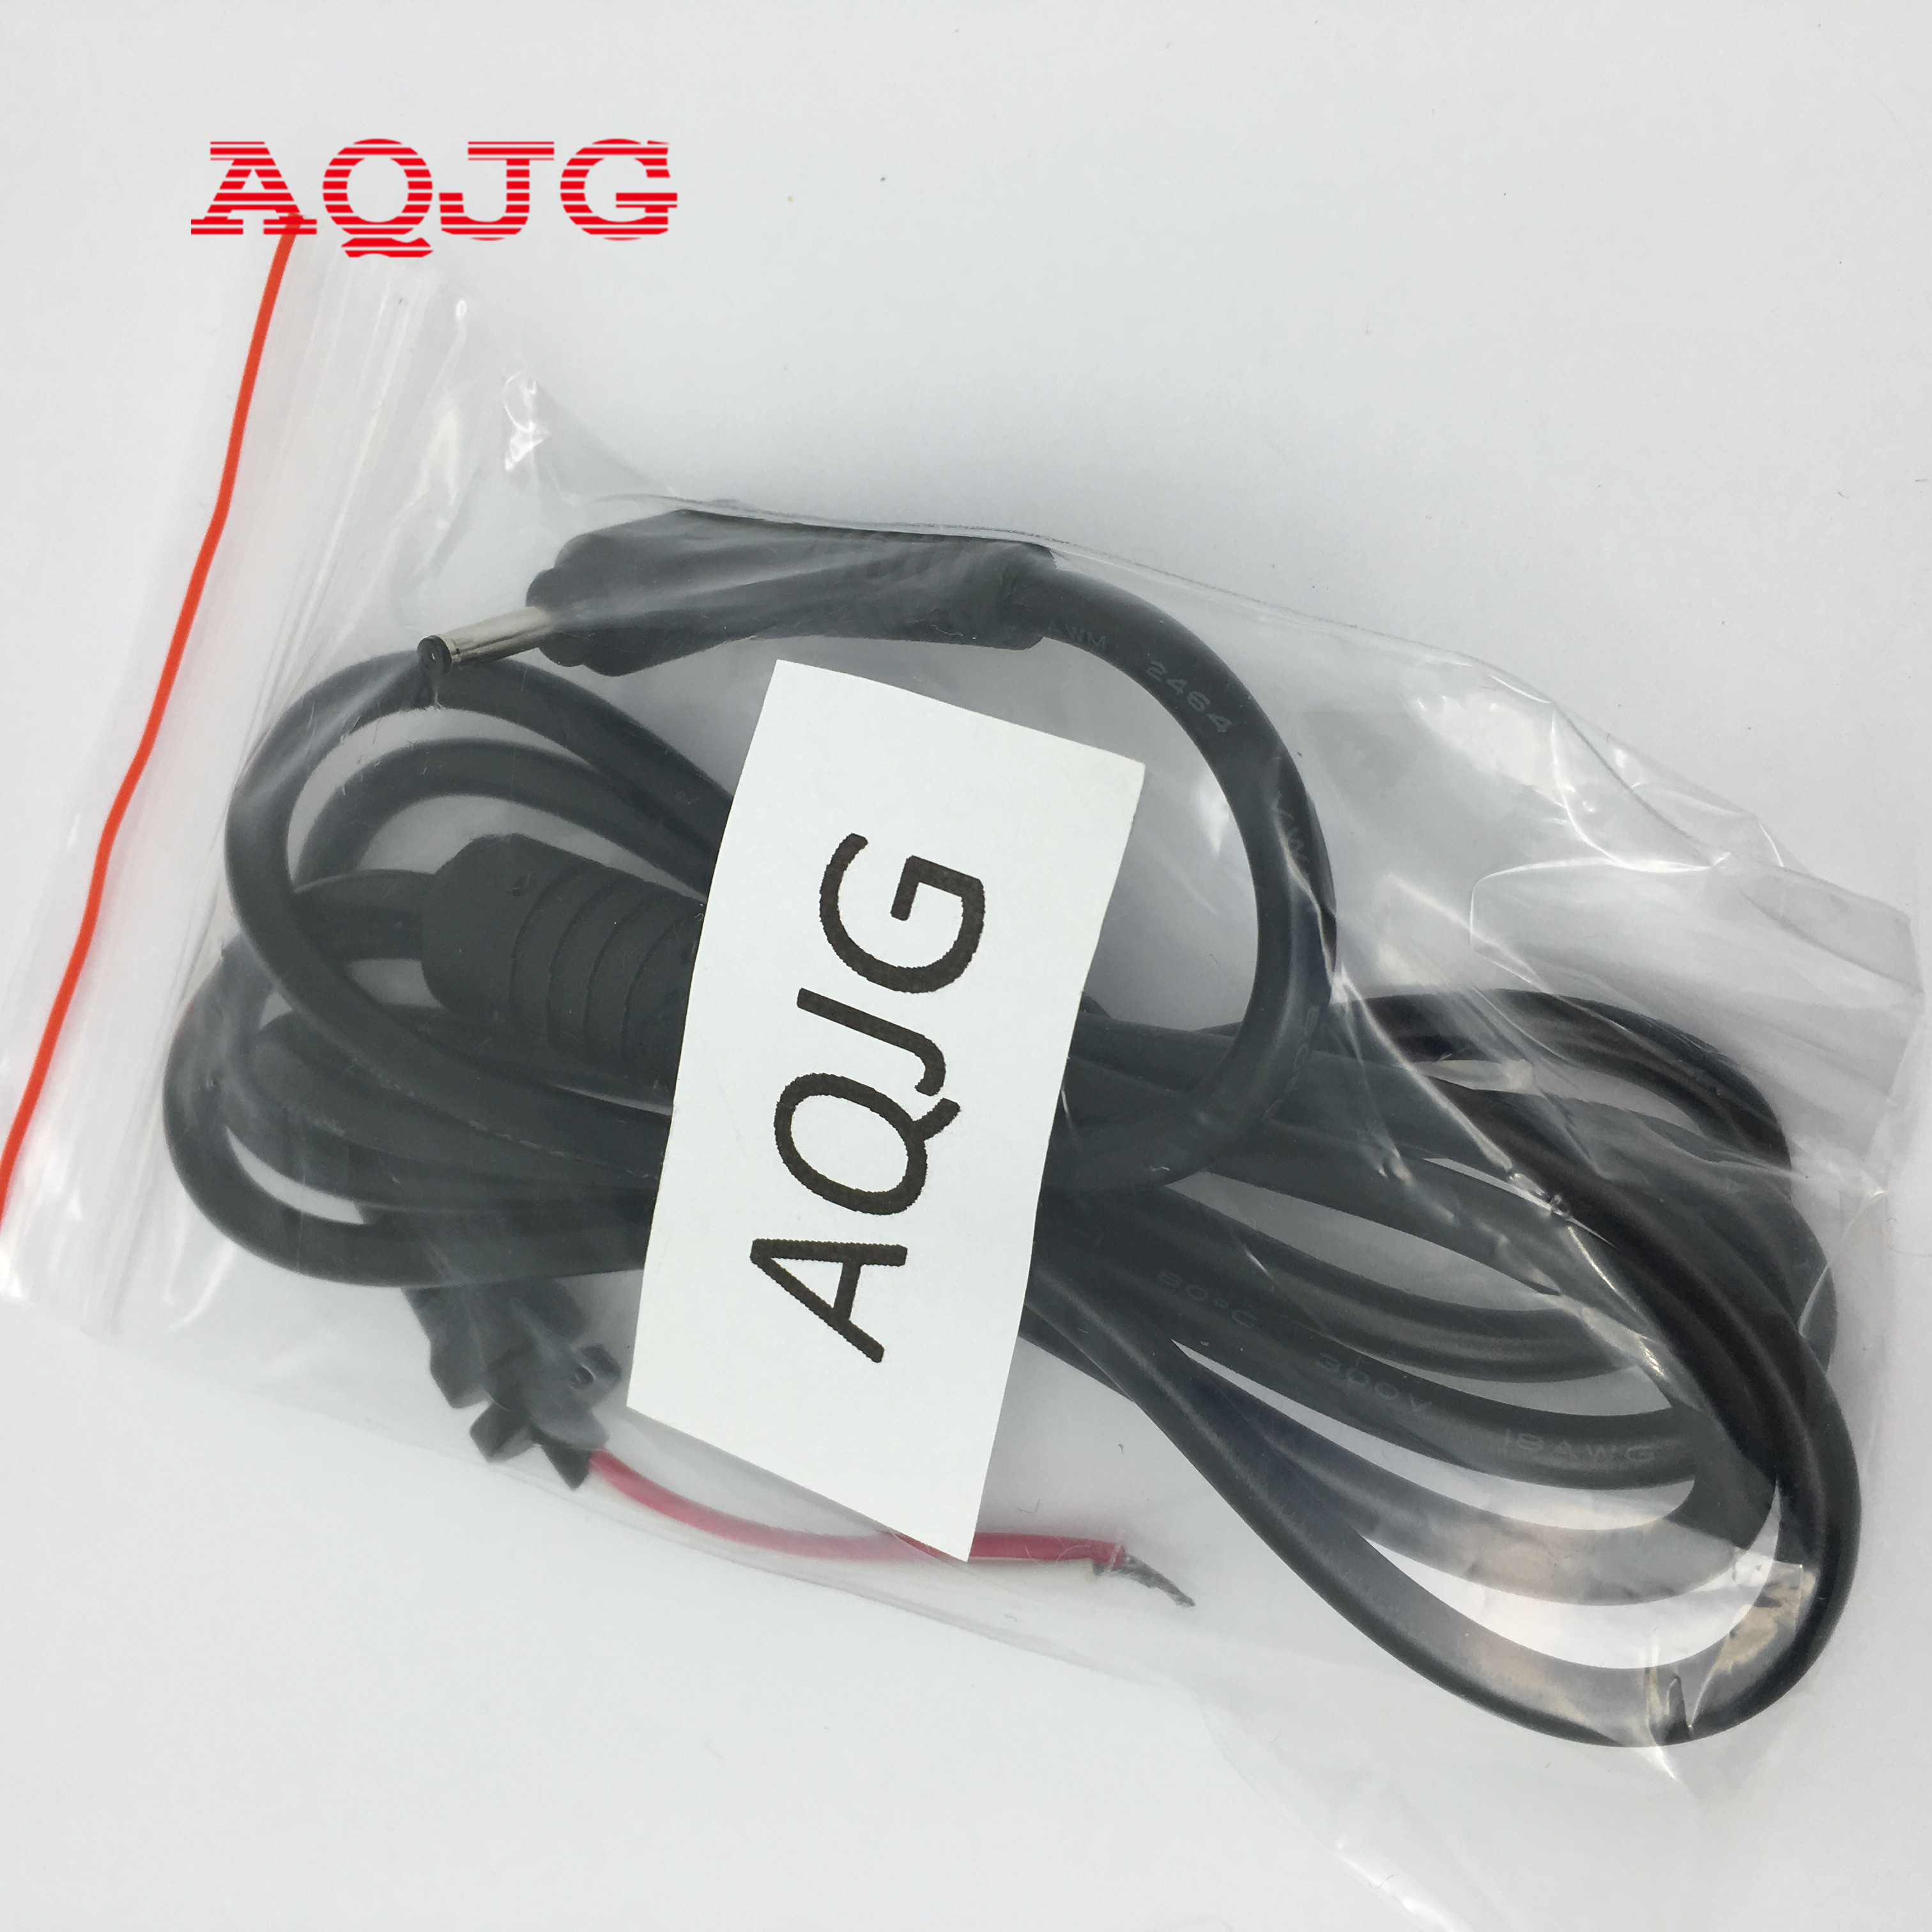 medium resolution of 3 0x1 1 mm dc power charger plug cable connector for asus samsung laptop adapter charger dc connector 3 0 1 0 cable aqjg in computer cables connectors